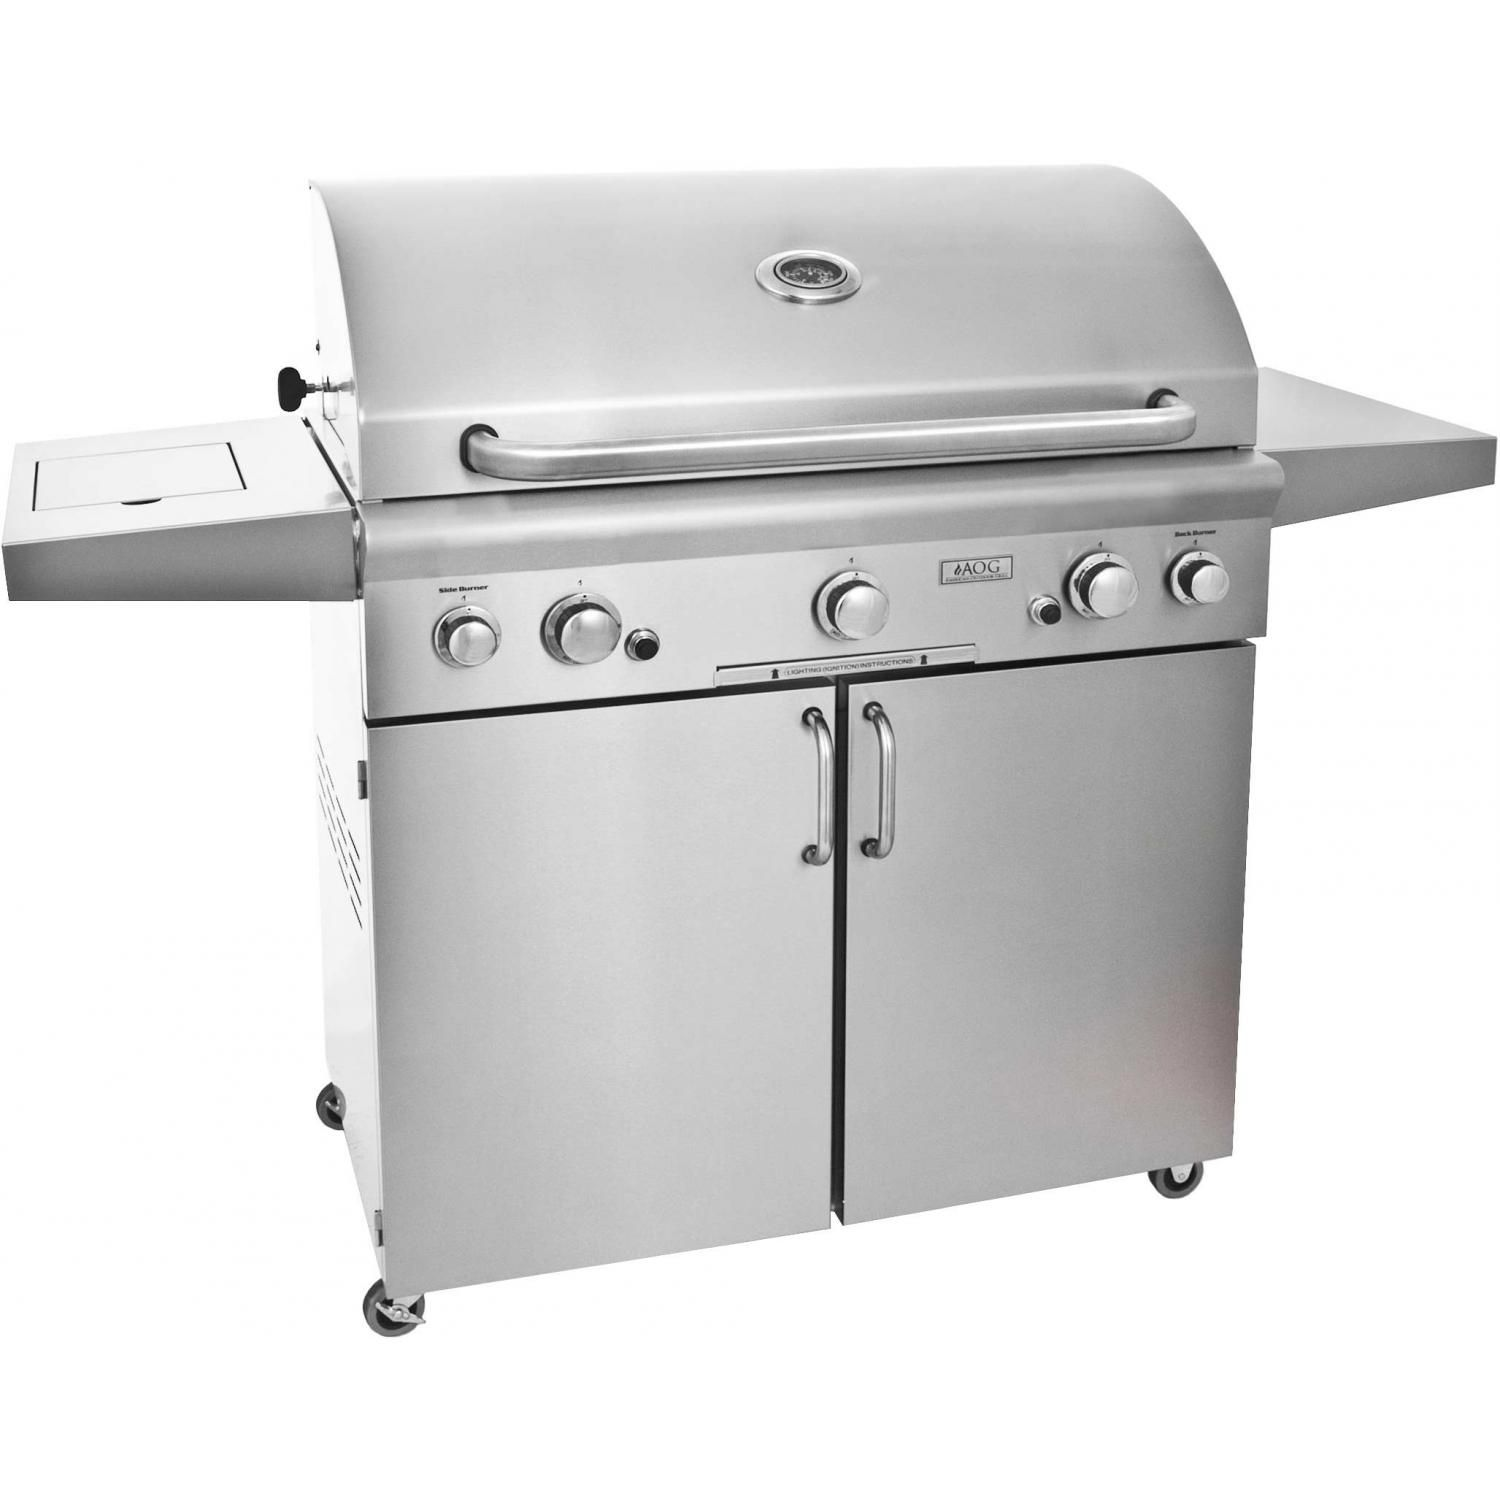 catering amp banquets information charcoal grill amp rotisserie - HD1500×1500